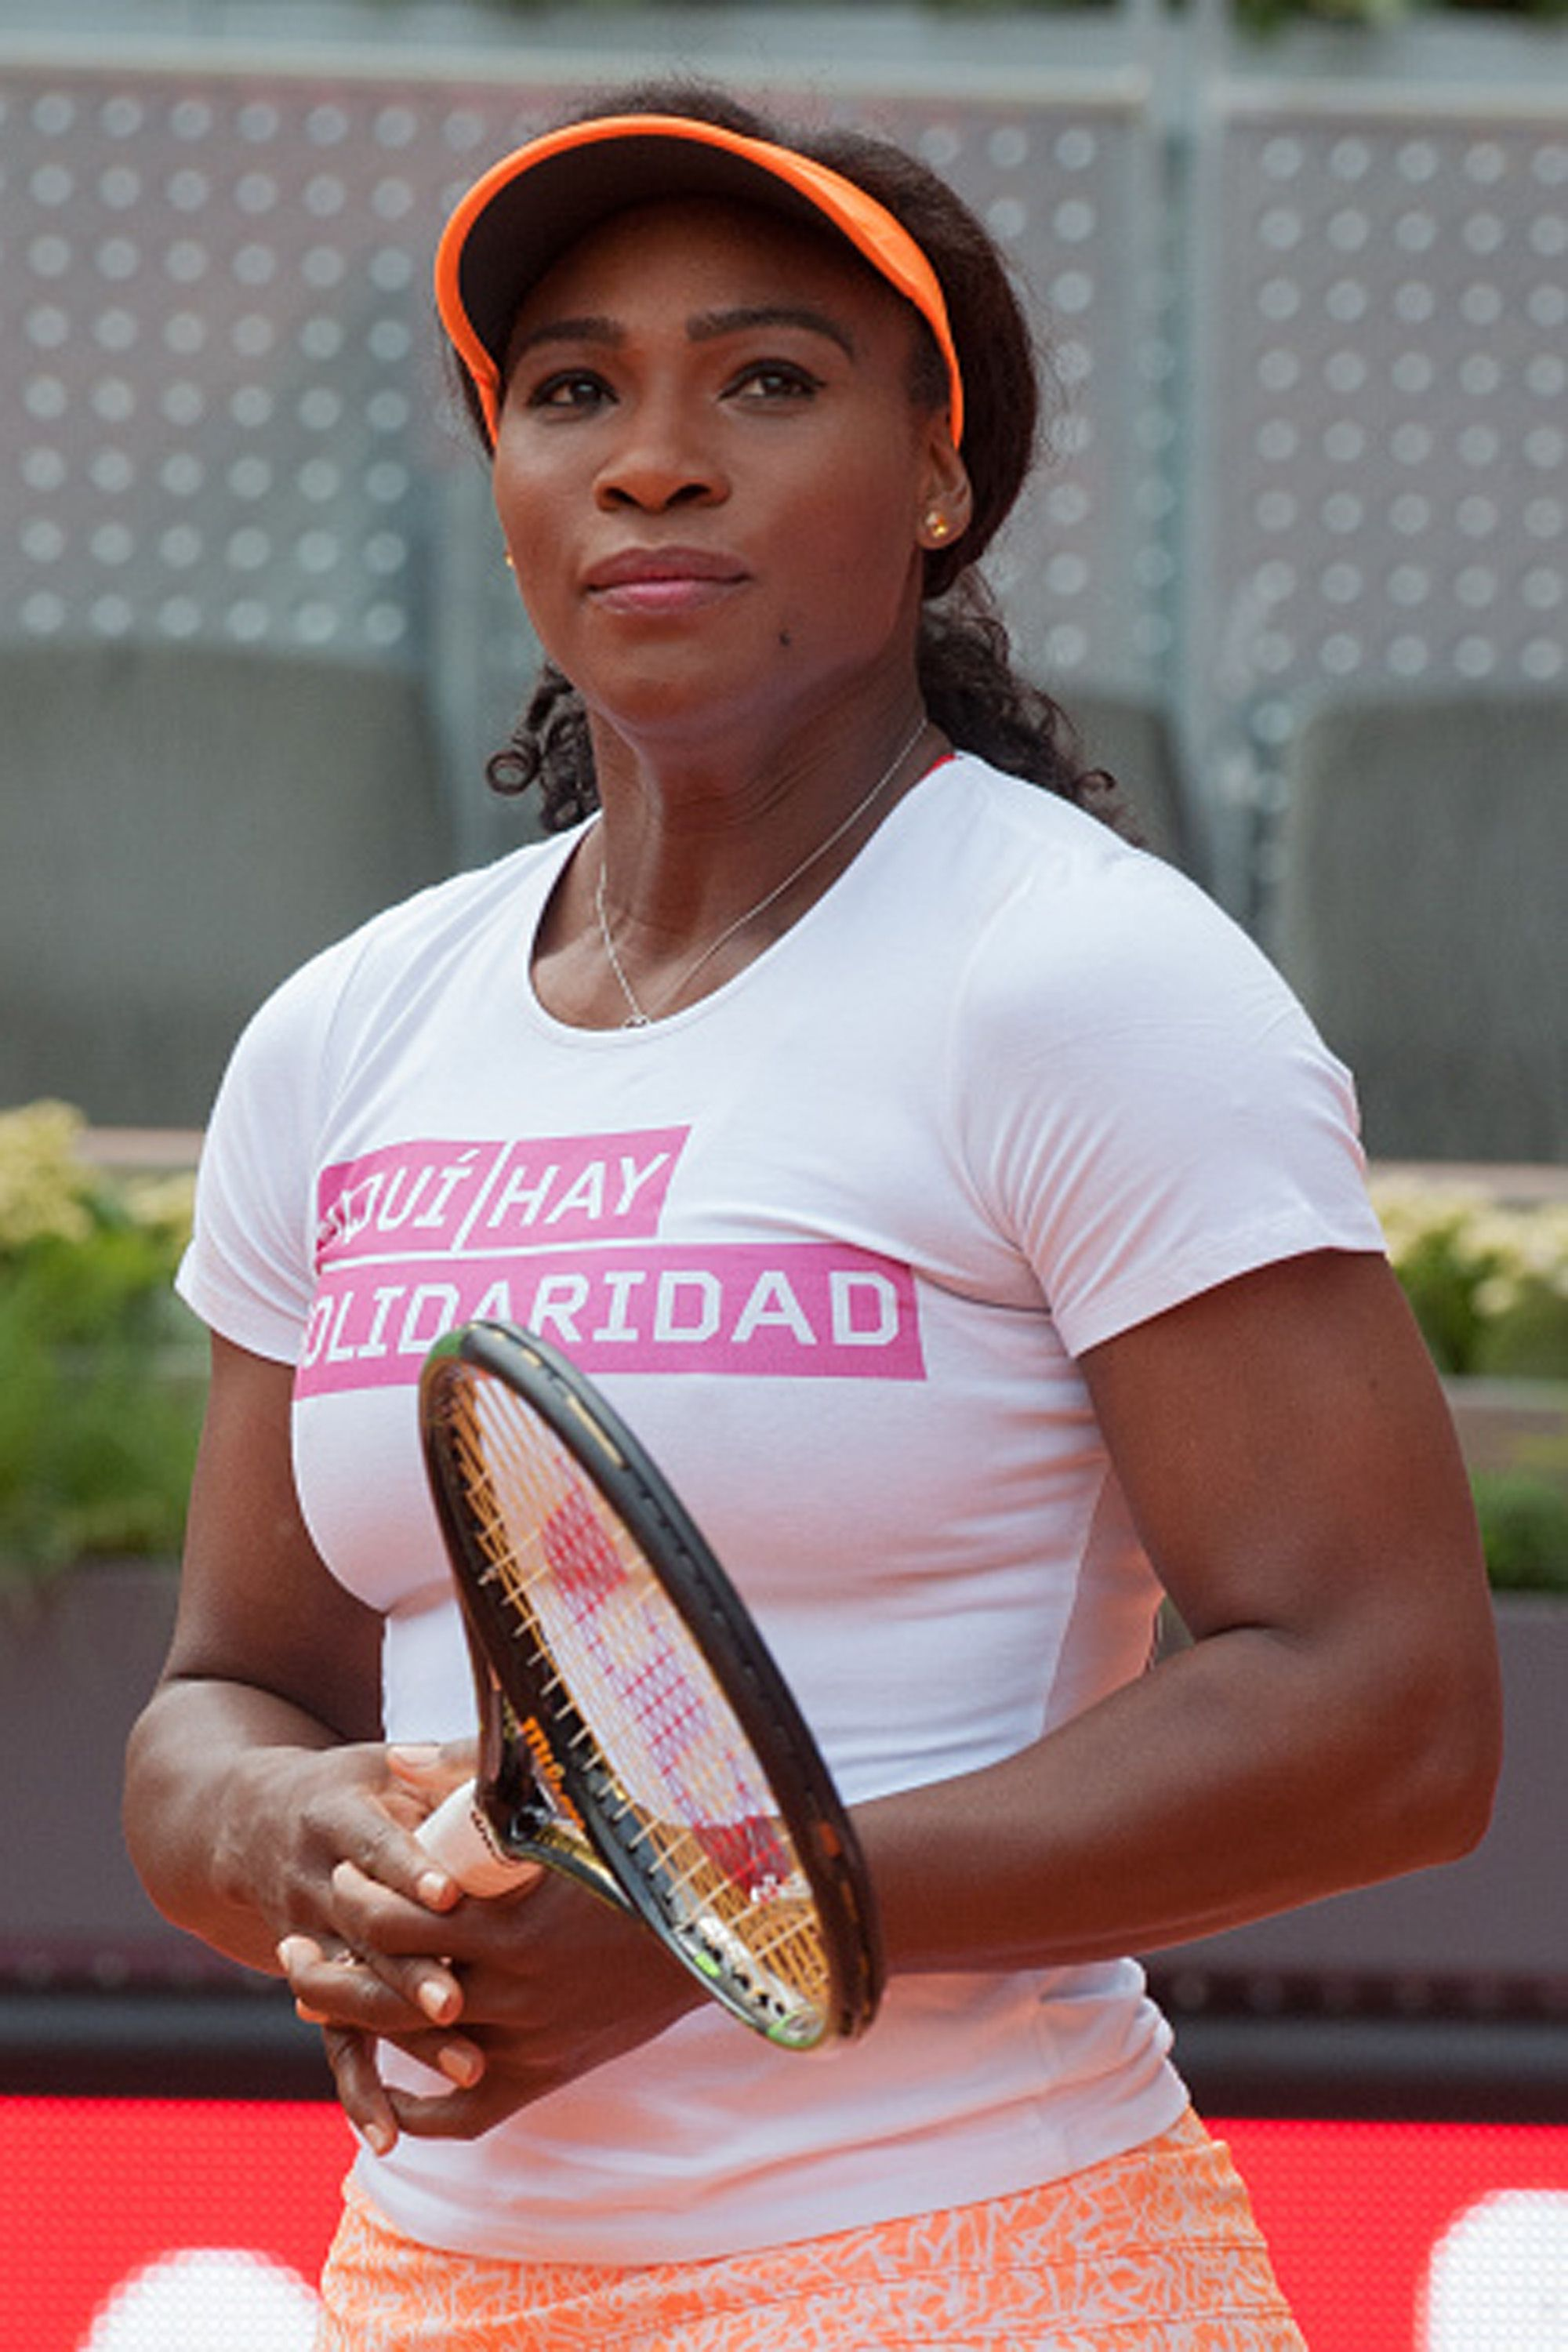 MADRID, SPAIN - MAY 01:  Serena Williams during a charity event held on the ocassion of the Mutua Madrid Open tennis tournament on May 1, 2015 in Madrid, Spain.  (Photo by Europa Press/Europa Press via Getty Images)